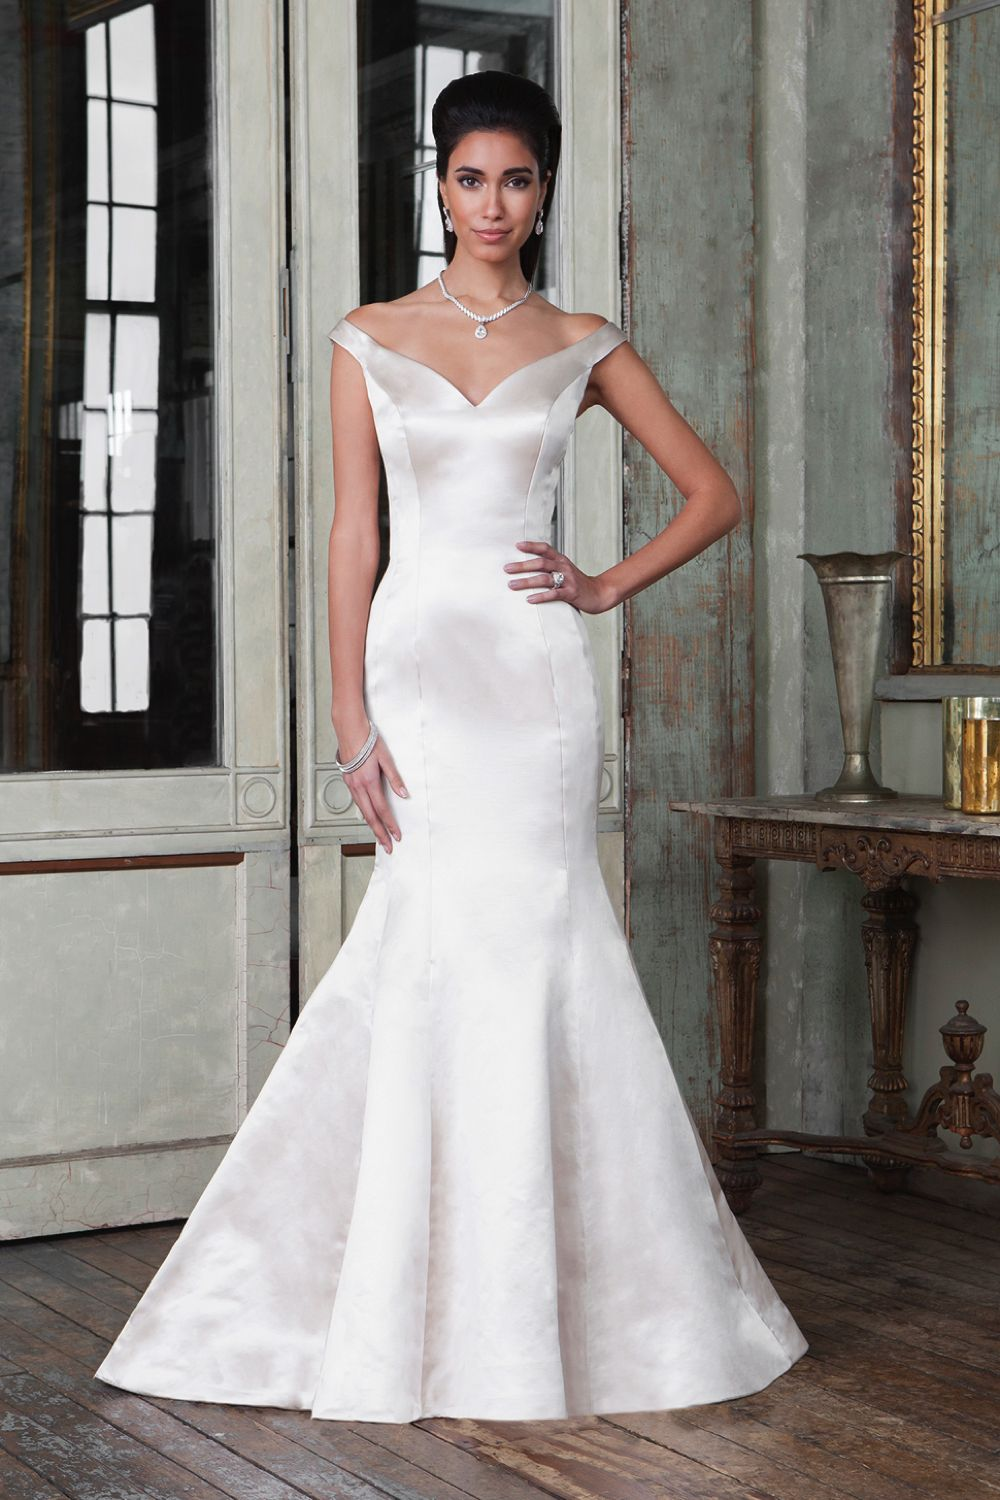 The incredible justin alexander signature wedding dress collection